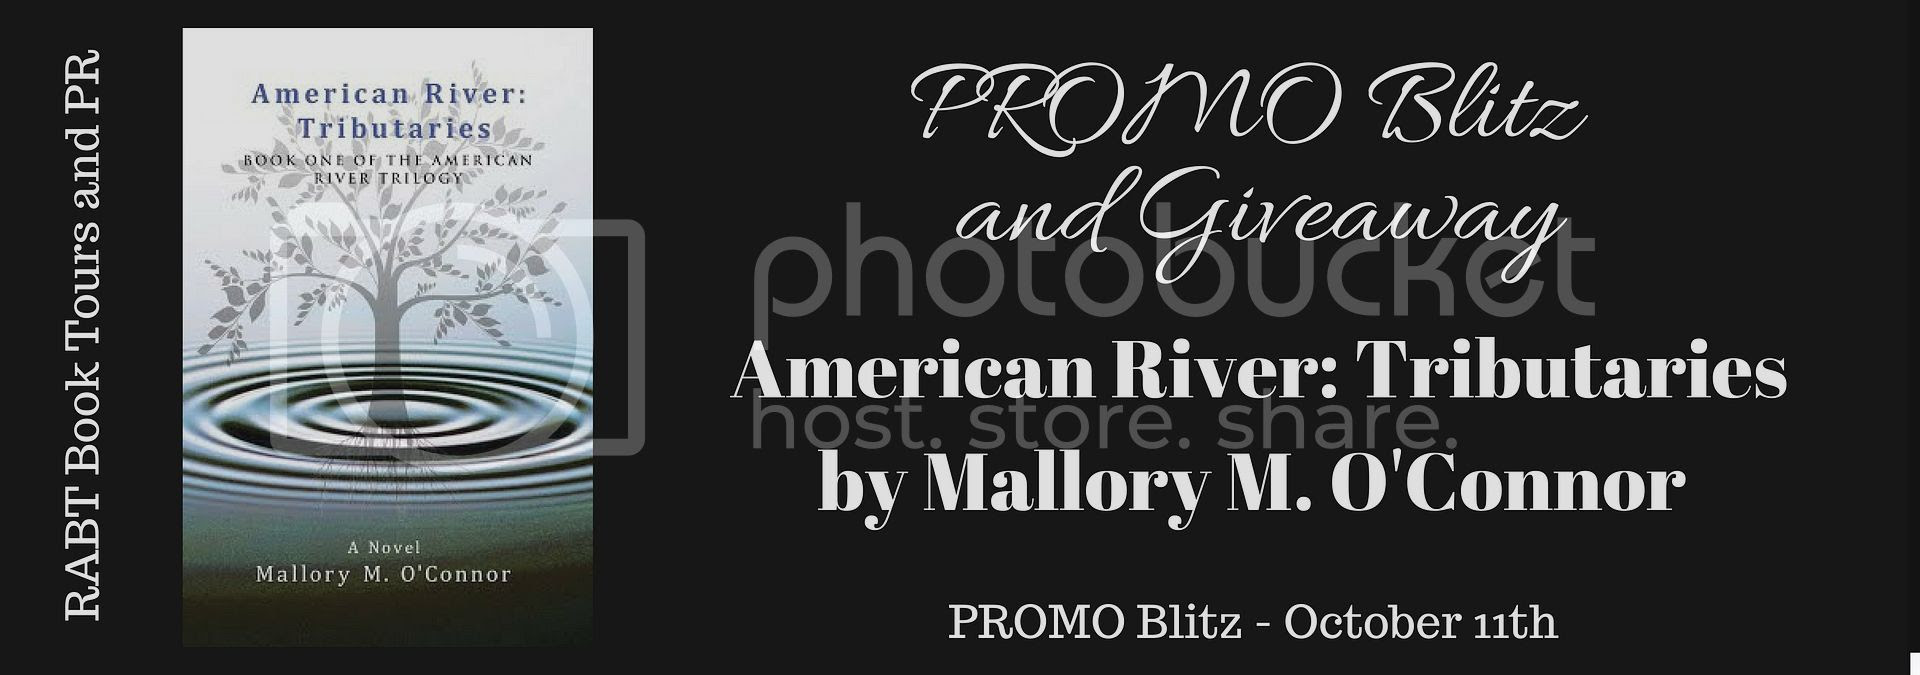 American River by Mallory M. O'Connor